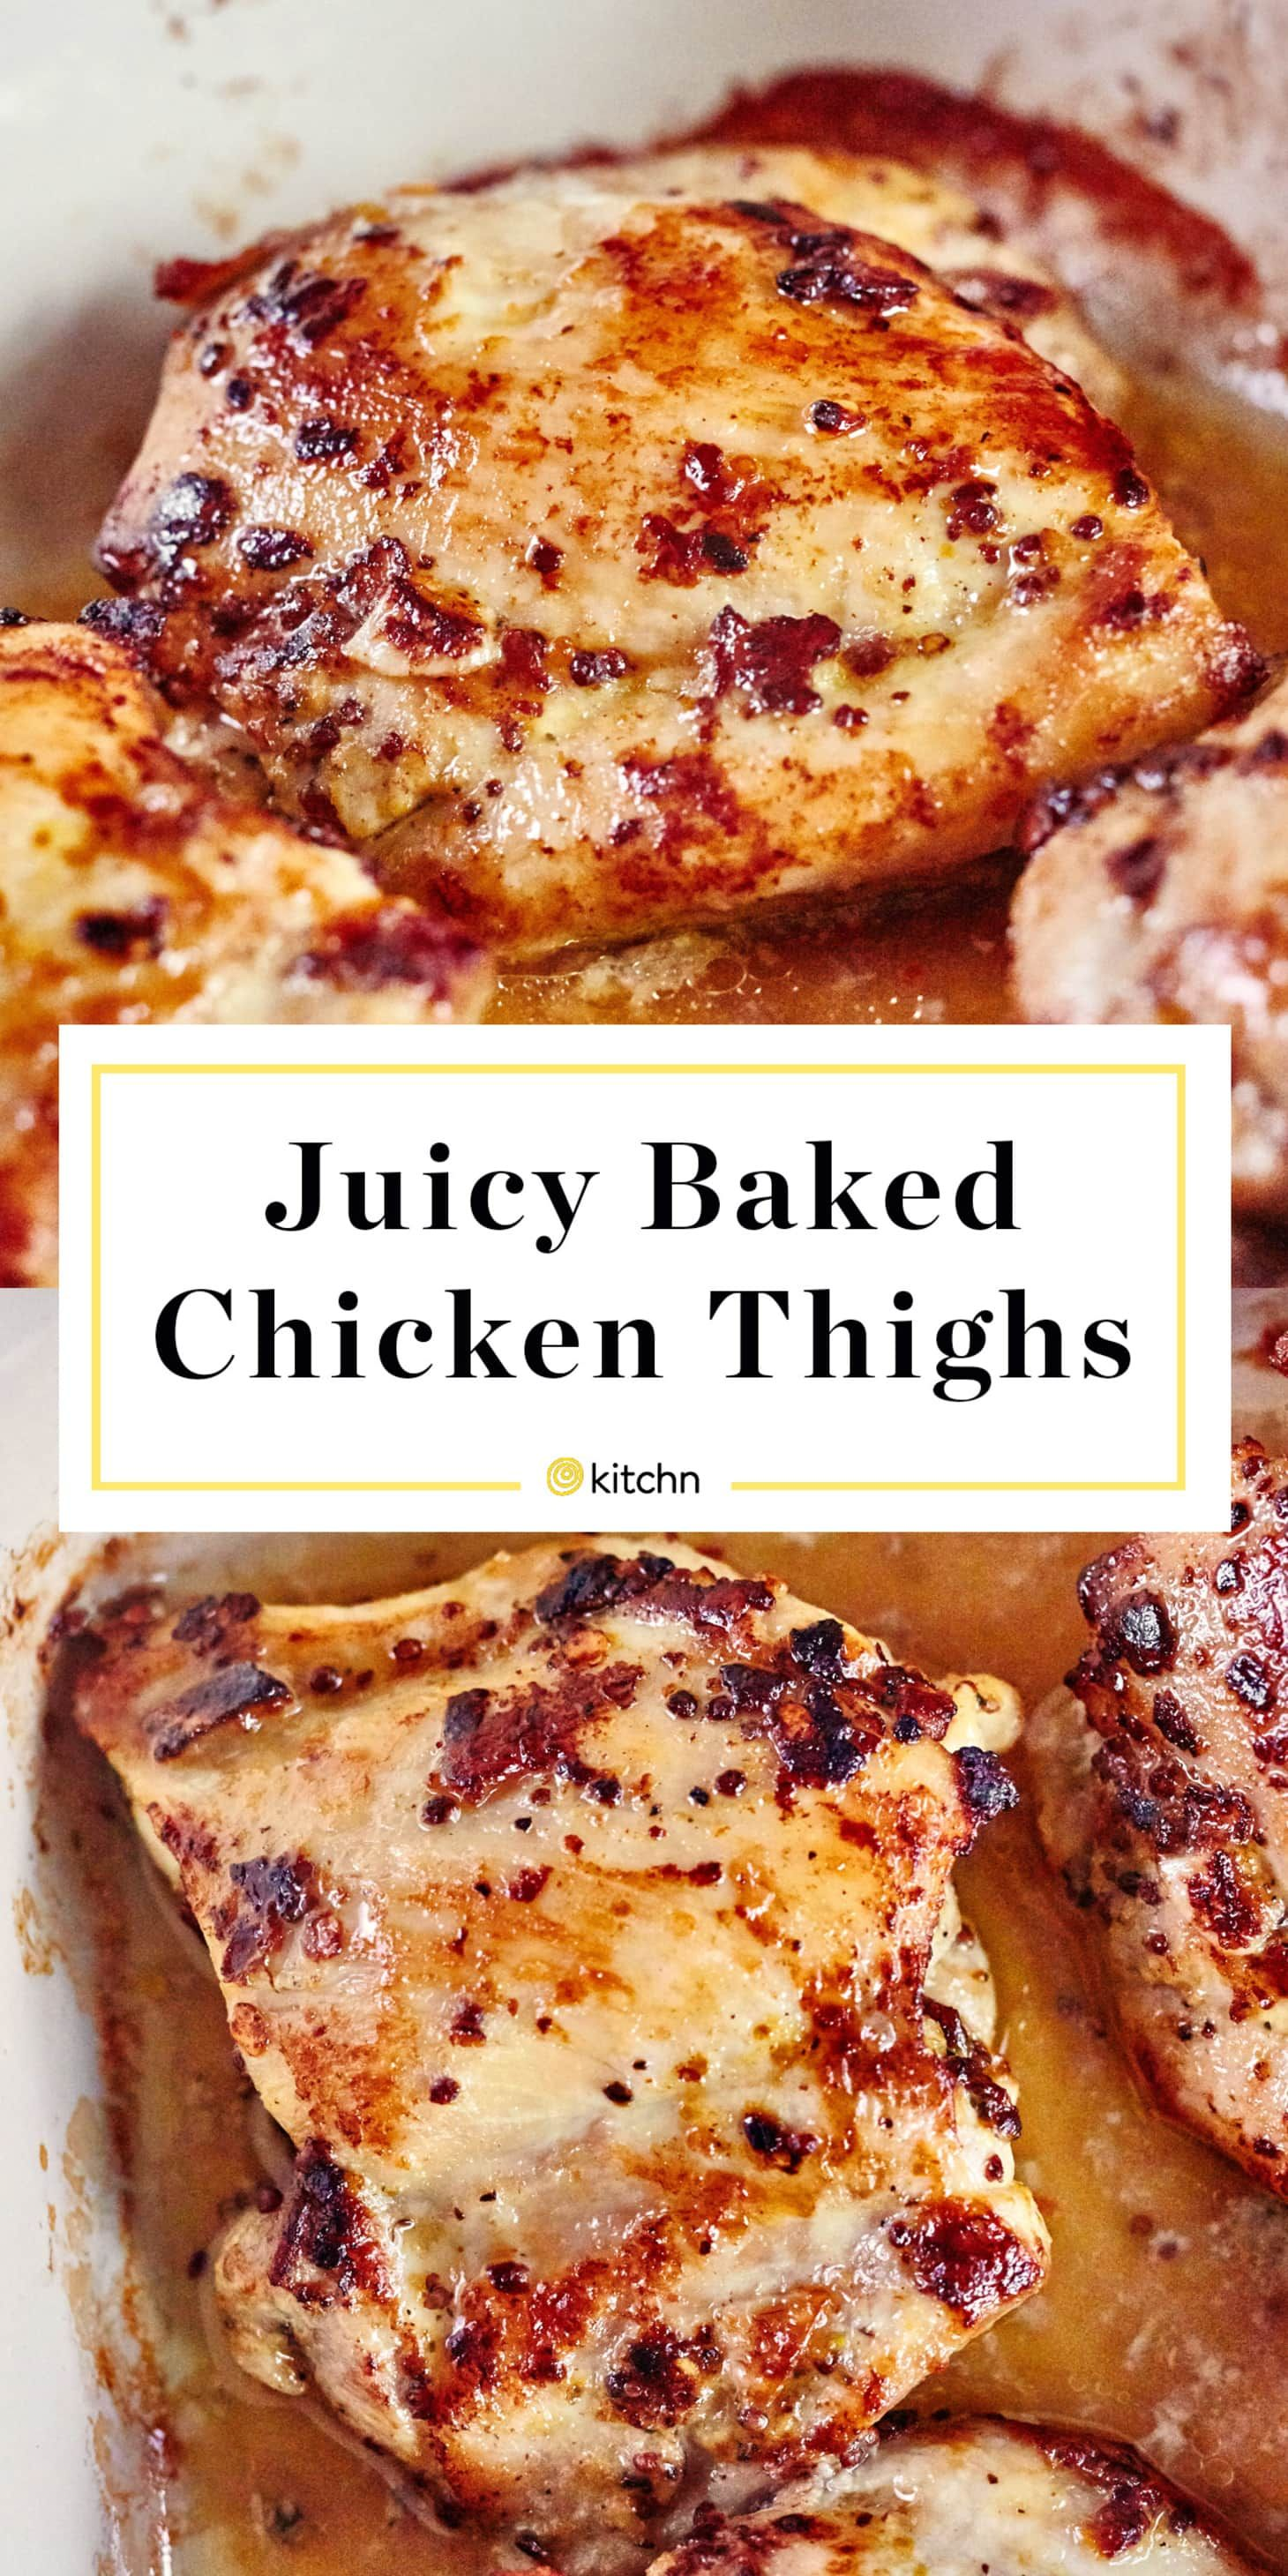 How To Cook Boneless Skinless Chicken Thighs In The Oven Recipe Chicken Thights Recipes Juicy Baked Chicken Baked Chicken Thighs